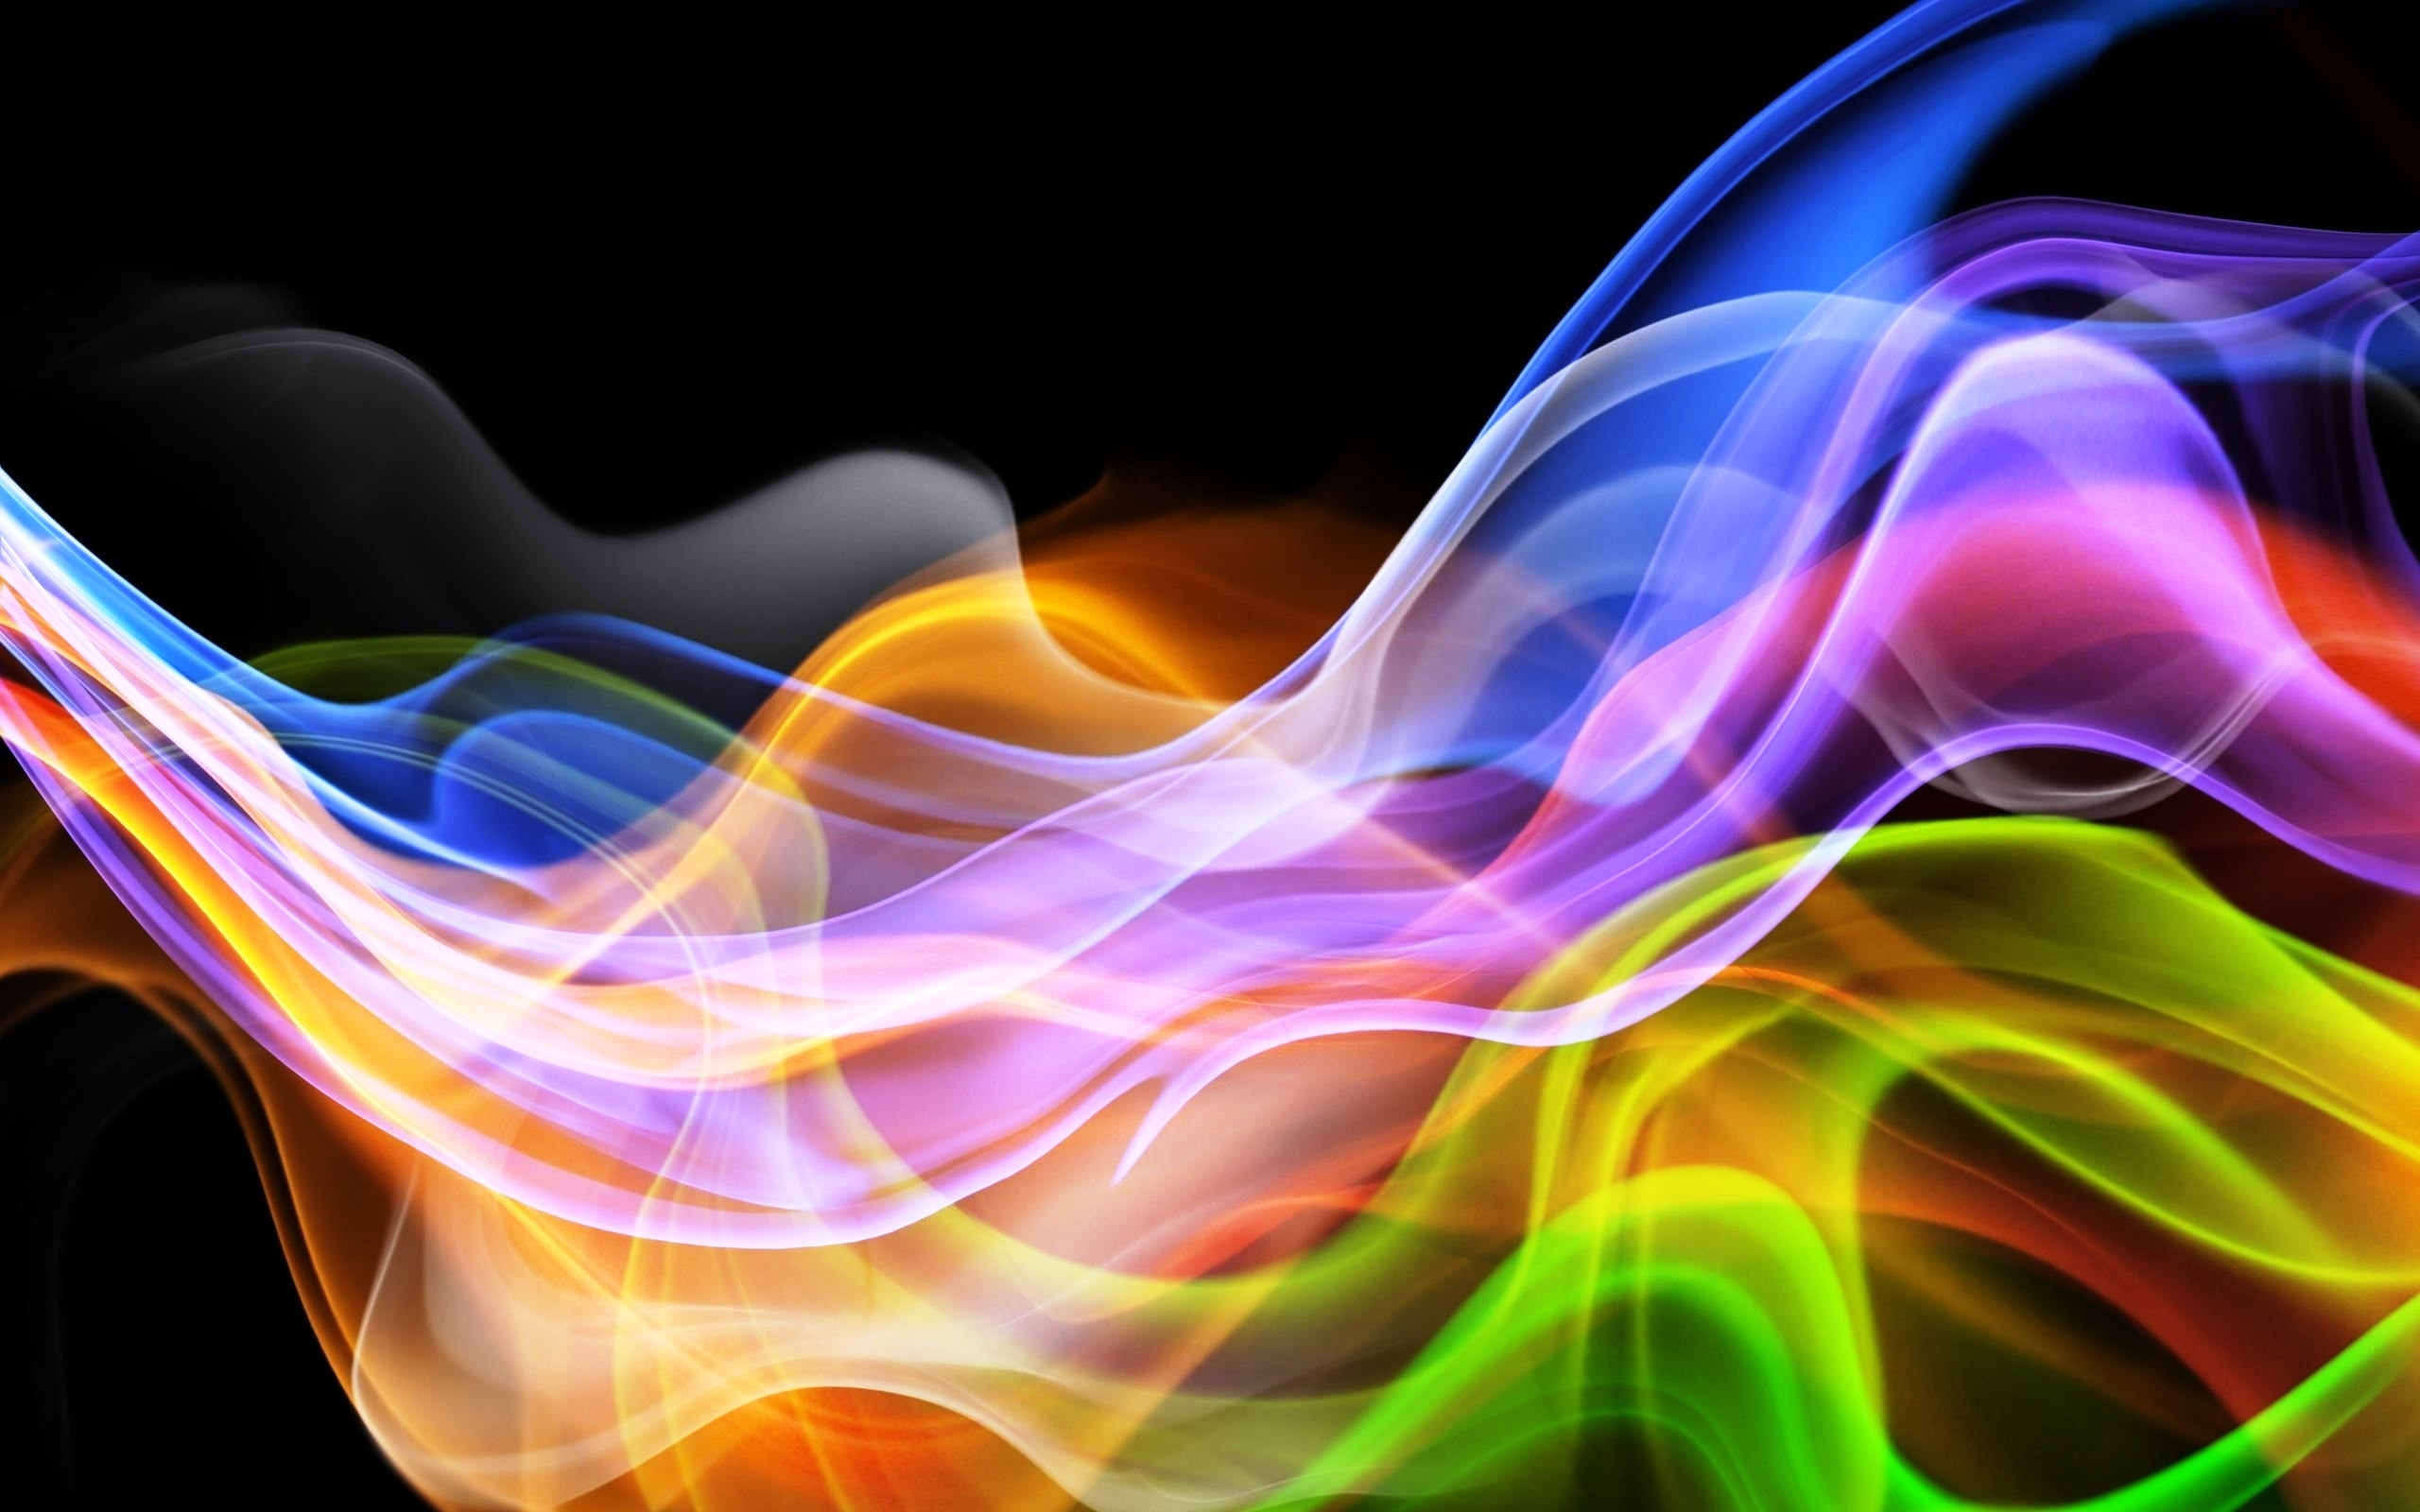 3d Abstract Colorful Smoke Wallpaper 2722 Wallpaper computer best 2560x1600